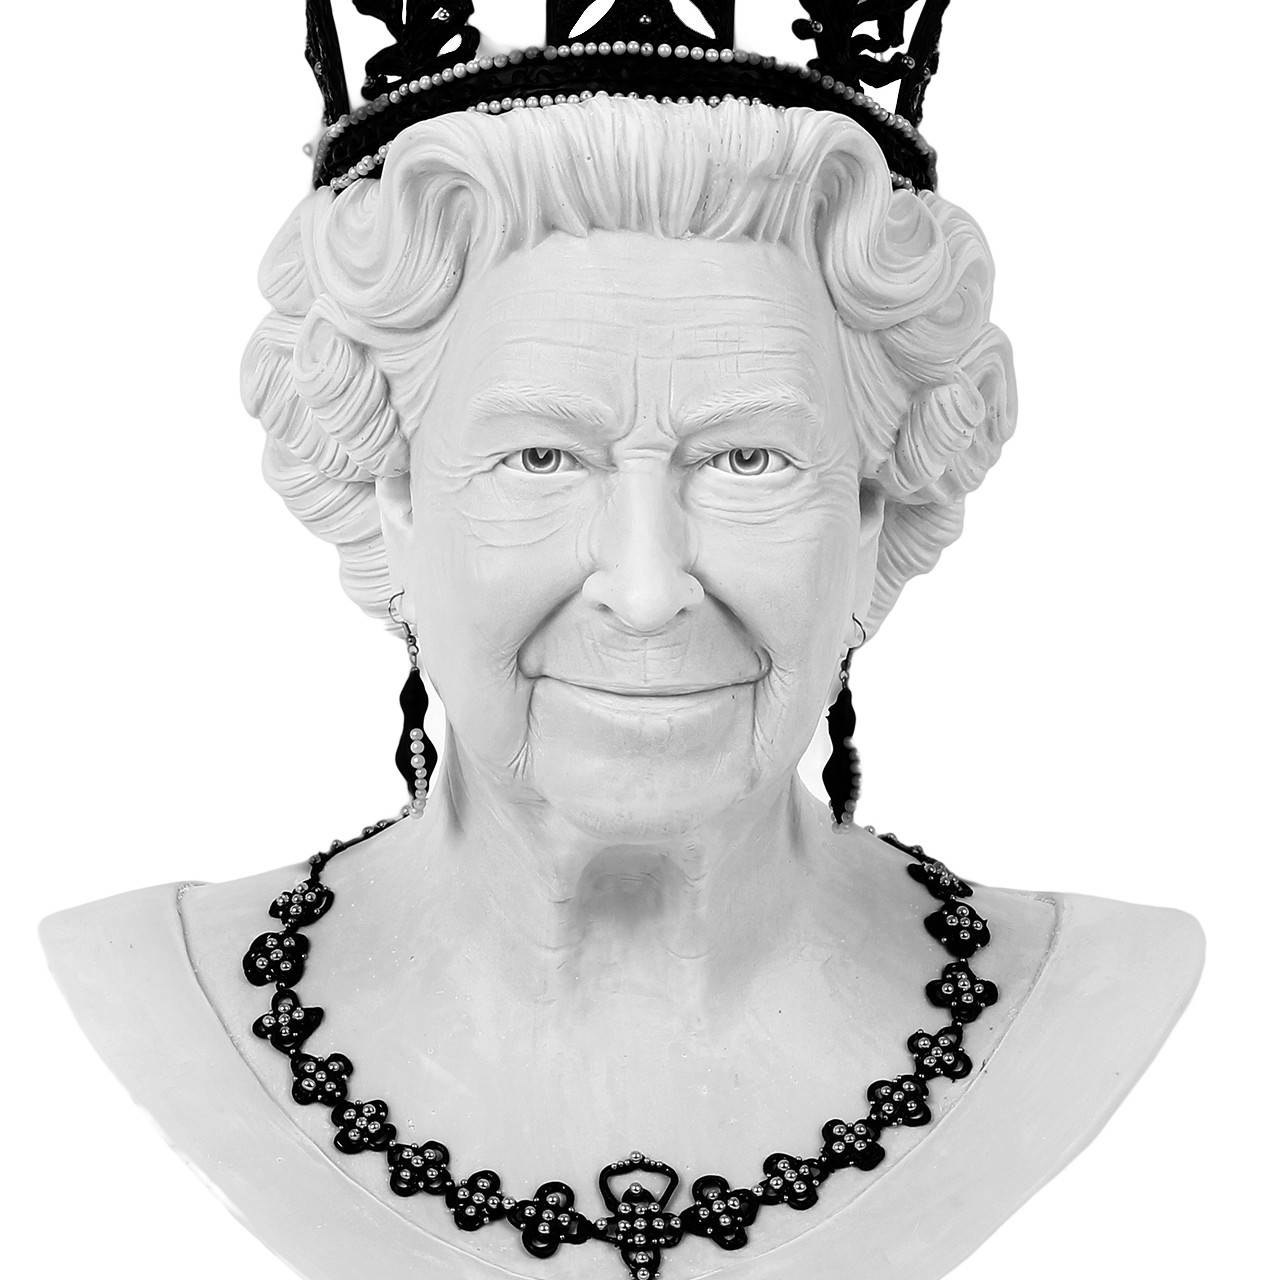 Queen Elizabeth II Sculpture